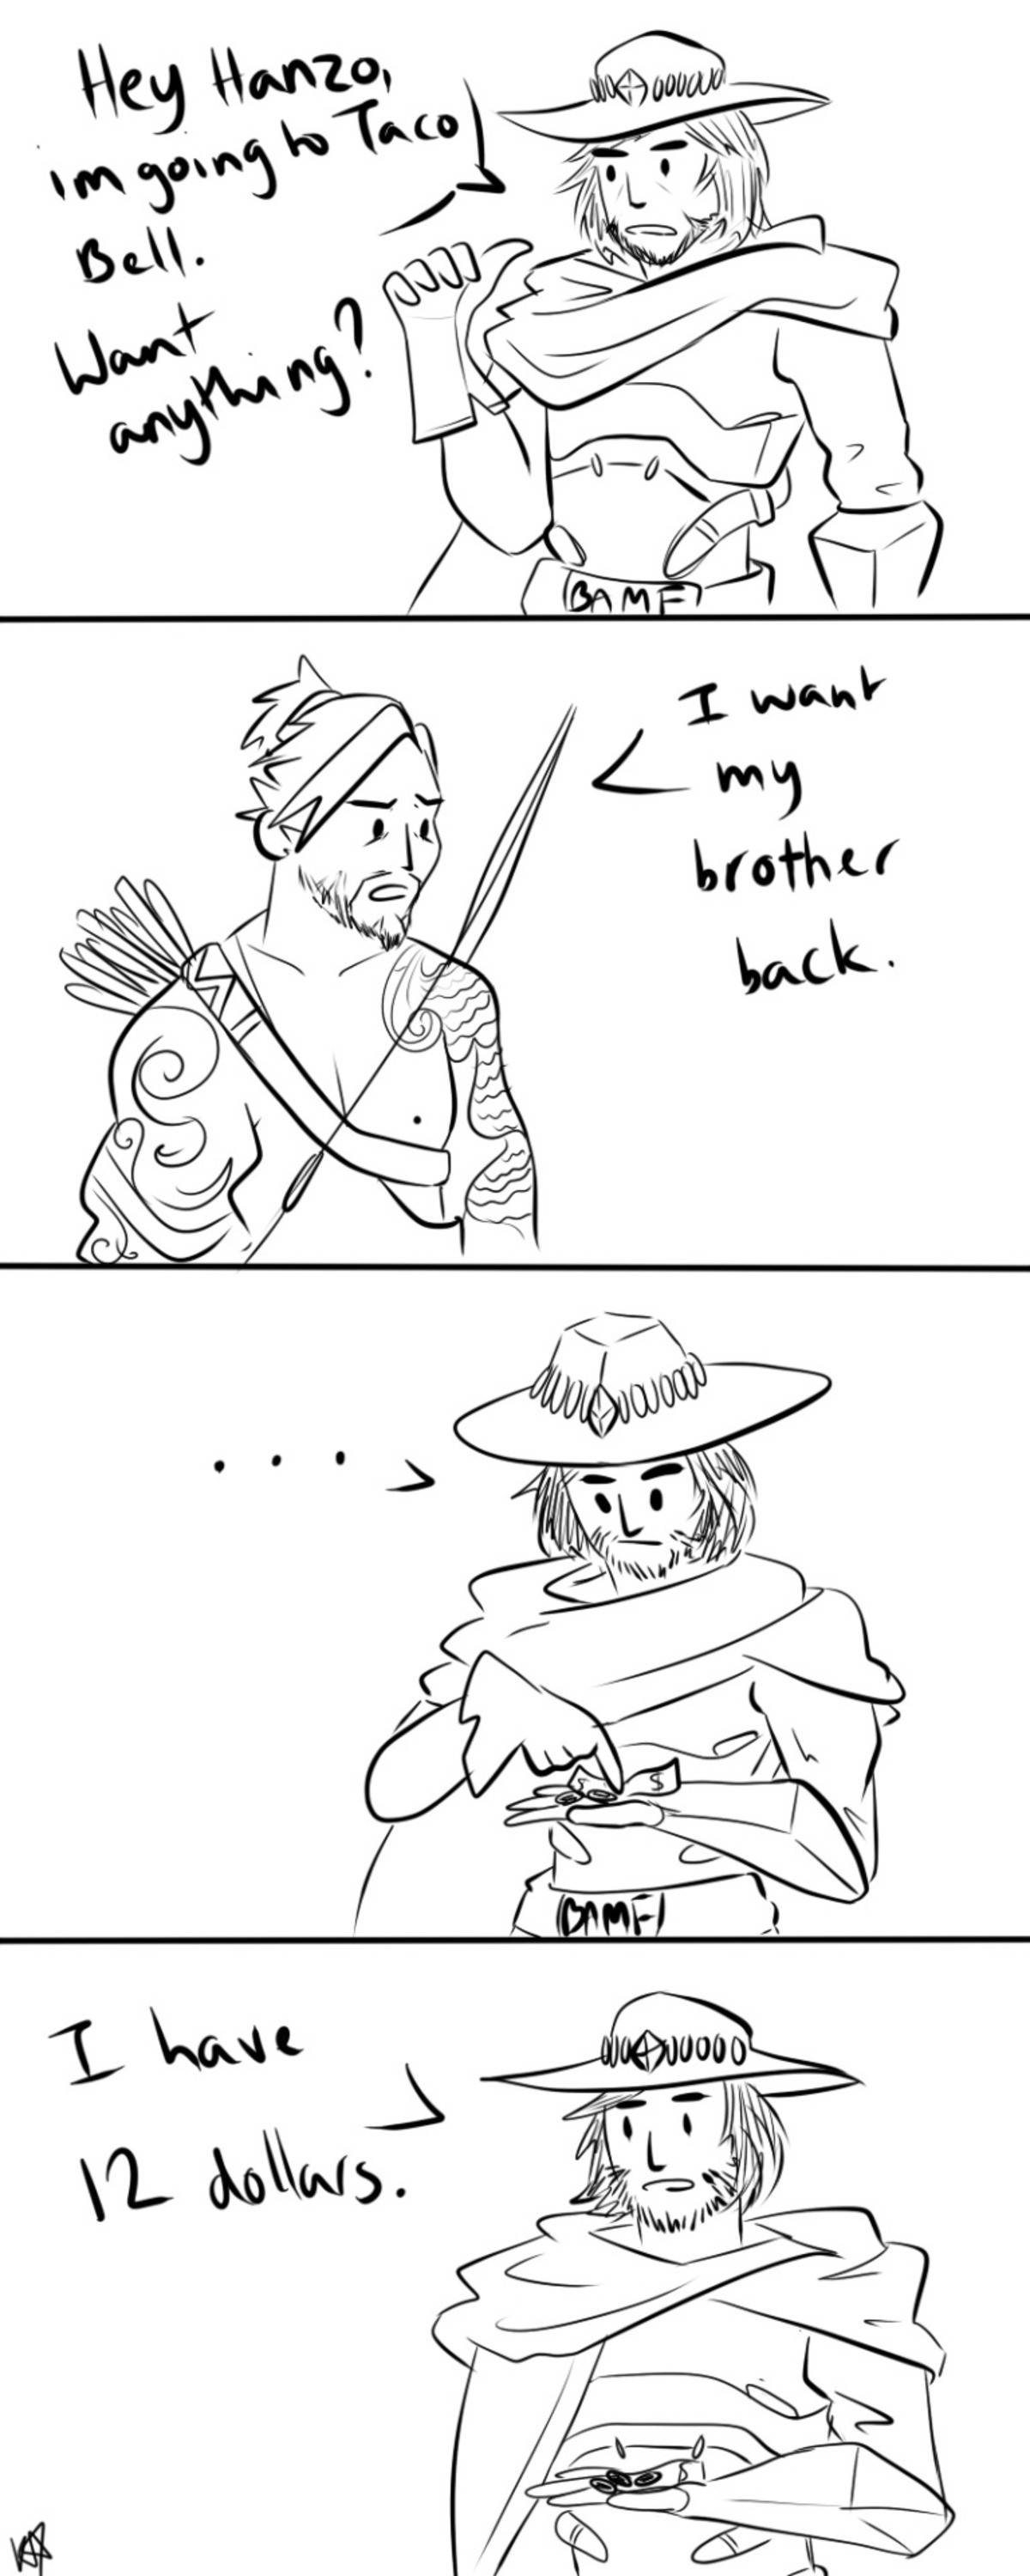 Taco Bell. join list: OverwatchStuff (1454 subs)Mention Clicks: 339898Msgs Sent: 2908422Mention History First OverwatchStuff Last .. Jesse's bounty hunting doesn't bring in much money So he gets a job as a McCreal Estate Agent